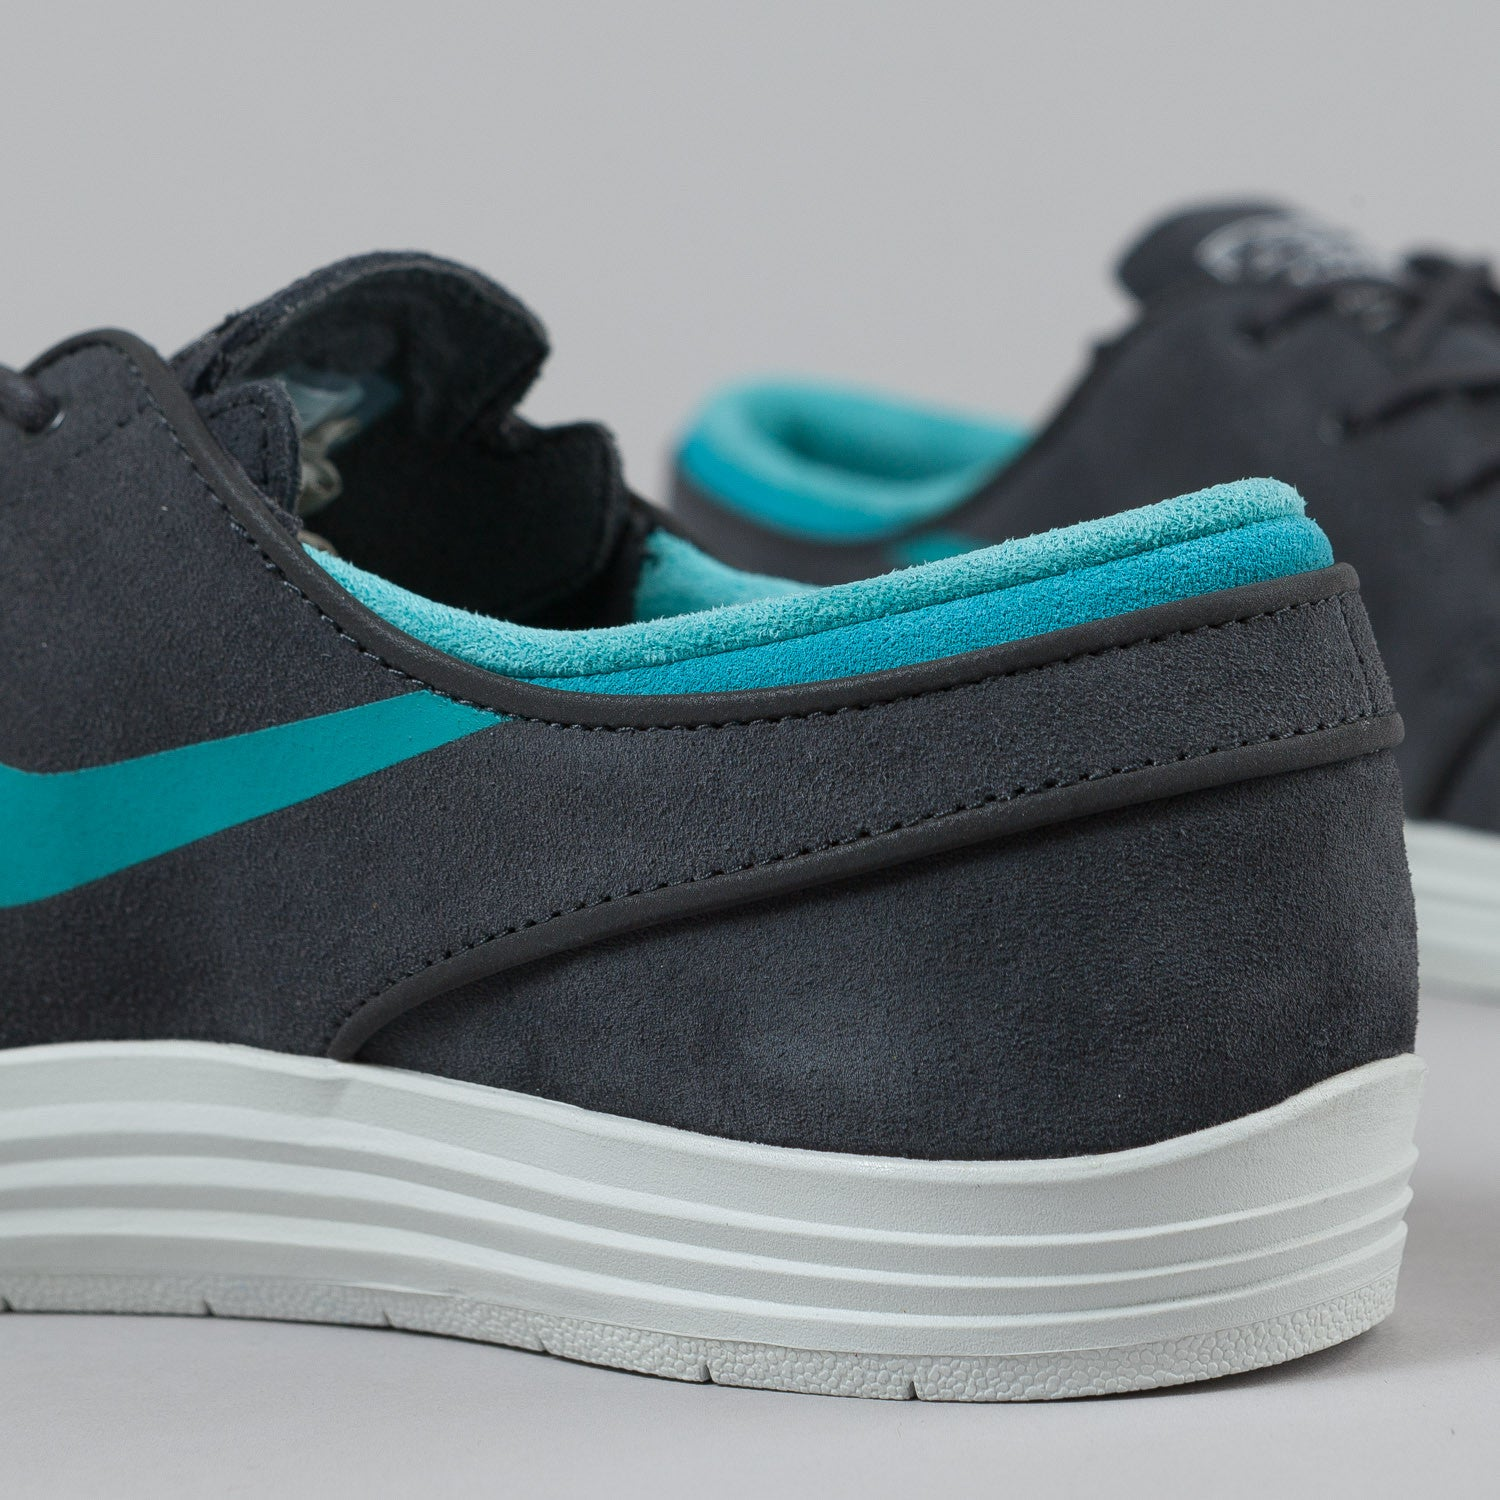 Nike SB Lunar Stefan Janoski Anthracite/Dusty Cactus - Summit White